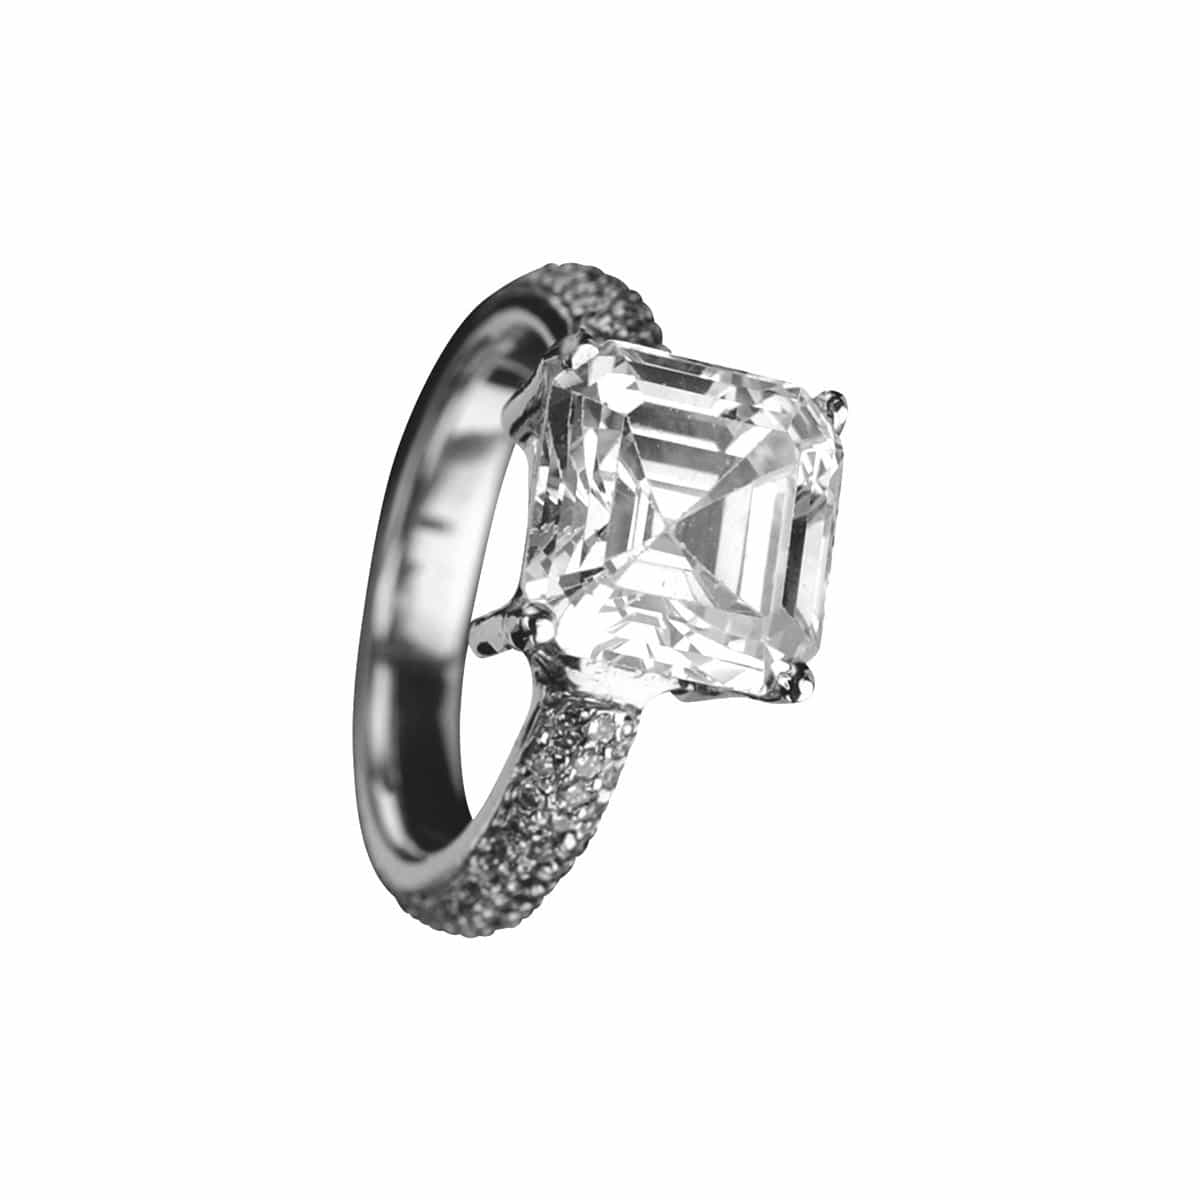 CHRIS AIRE Platinum Engagement Ring - Chris Aire Fine Jewelry & Timepieces